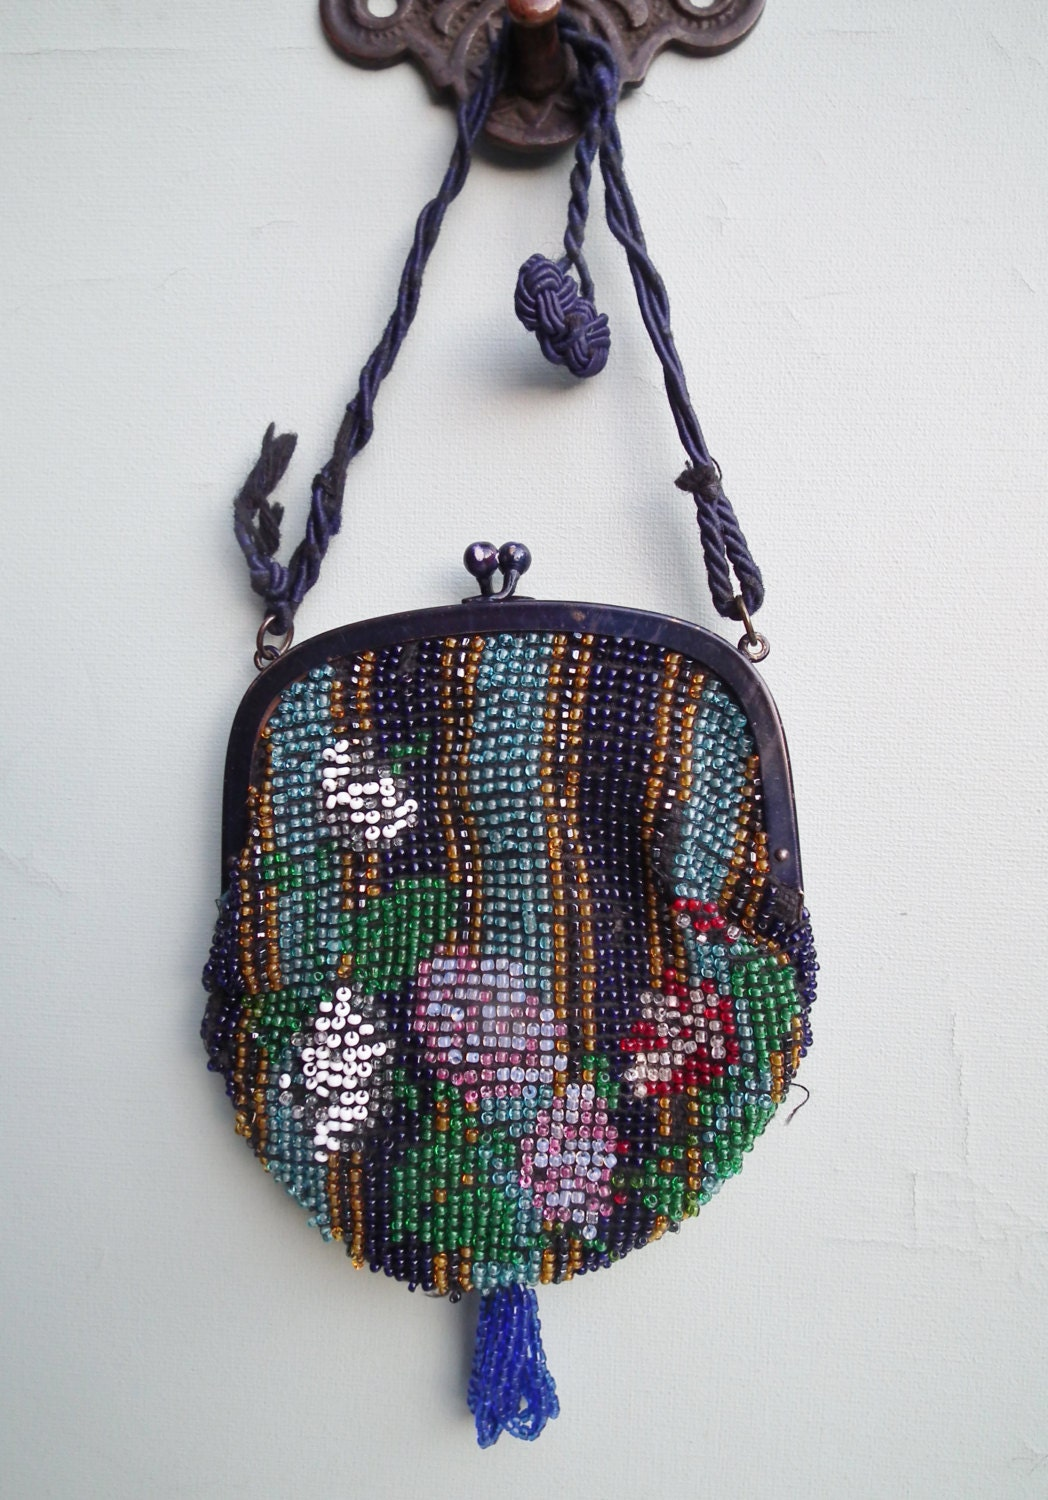 vintage 1920s small purse beaded bag handbag by somuchfrippery